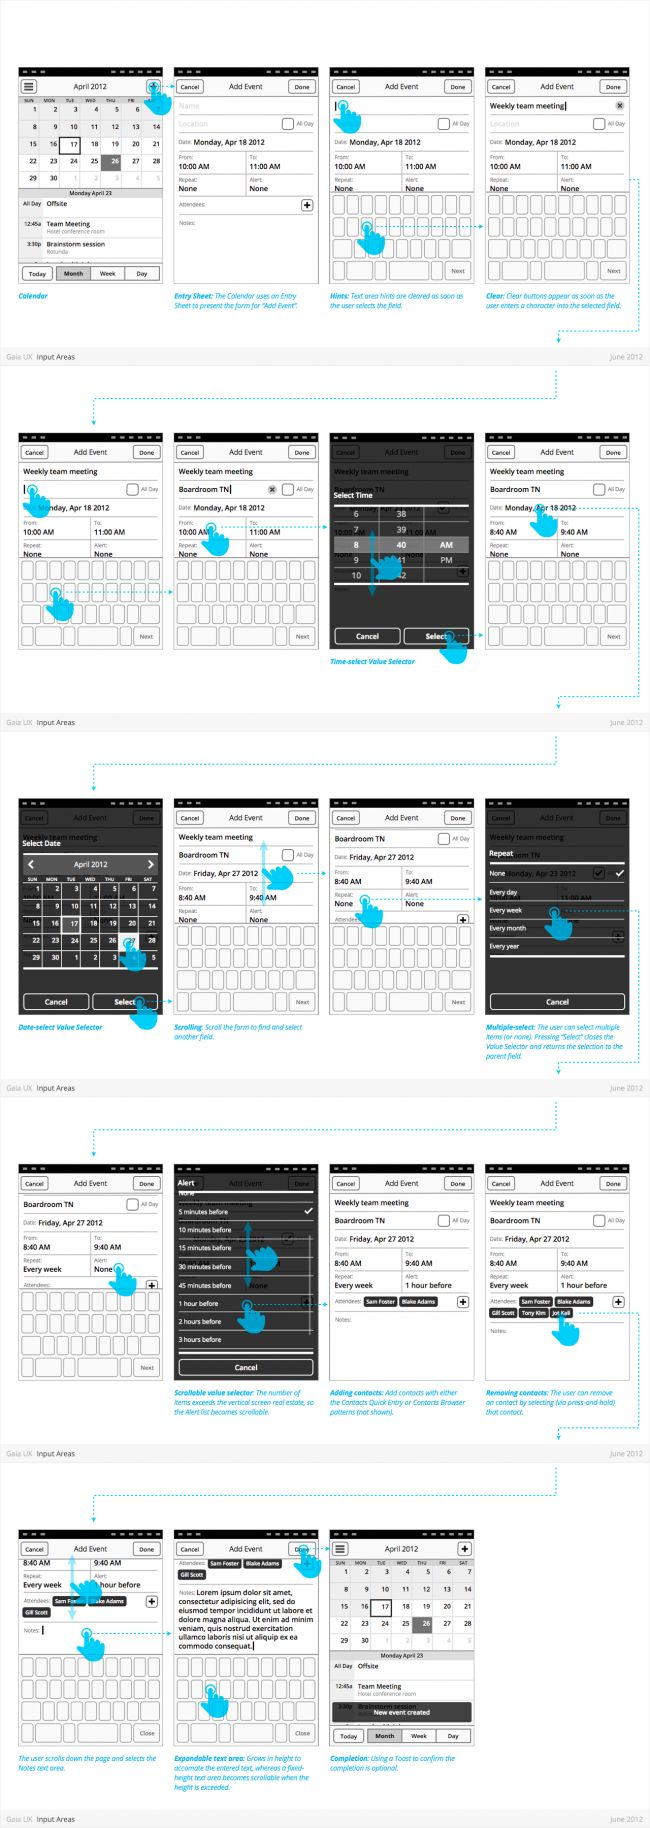 Firefox OS (Gaia) Design Patterns #UX #wireframes #annotated #interactions